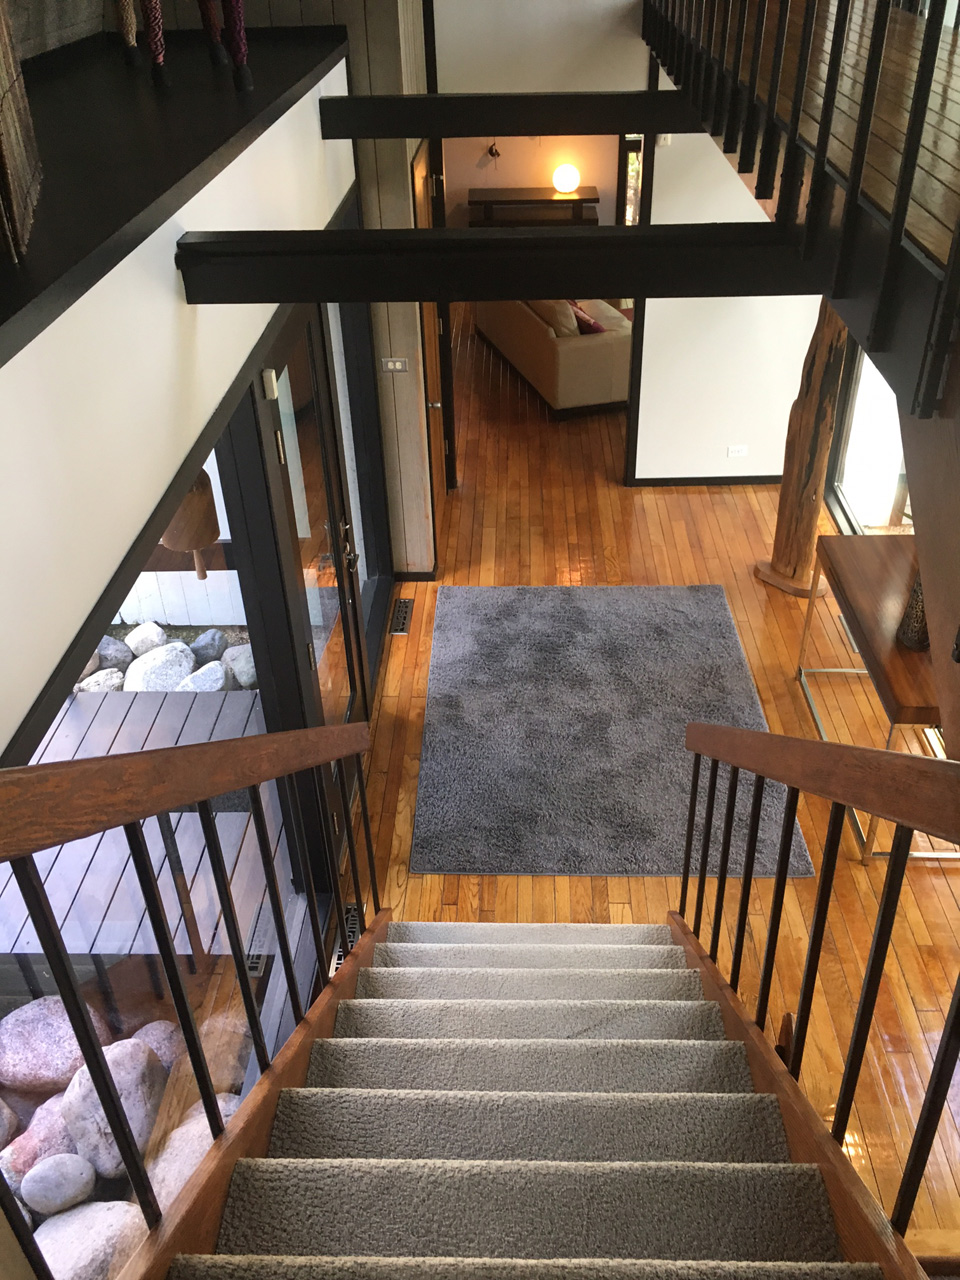 The stairs lead to from the foyer to the master suite bridge and bedroom level